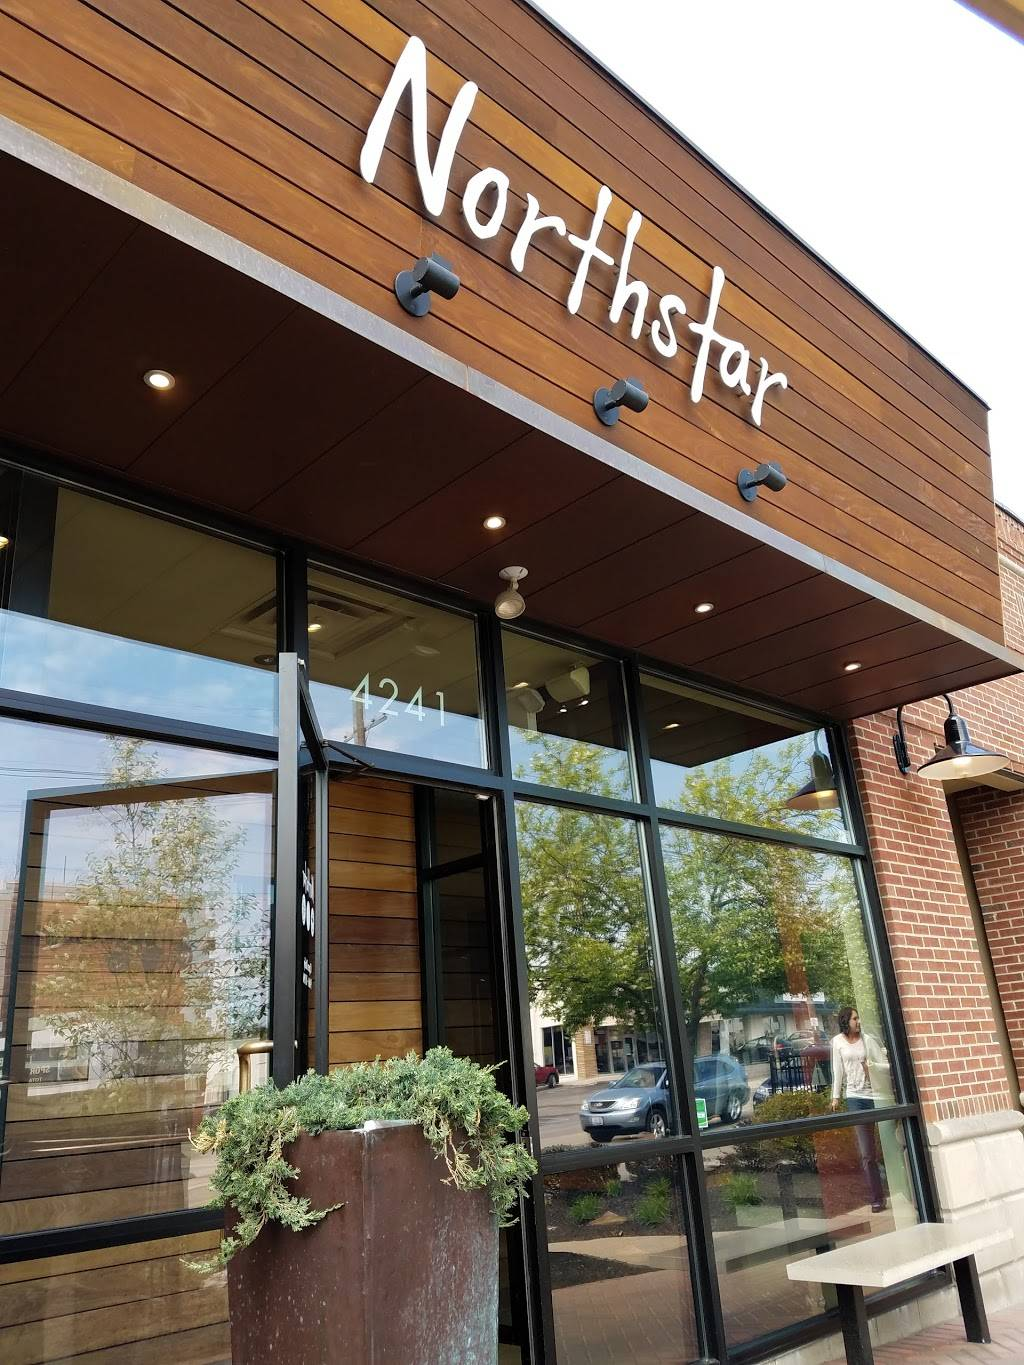 Northstar Cafe in Beechwold | restaurant | 4241 N High St, Columbus, OH 43214, USA | 6147842233 OR +1 614-784-2233